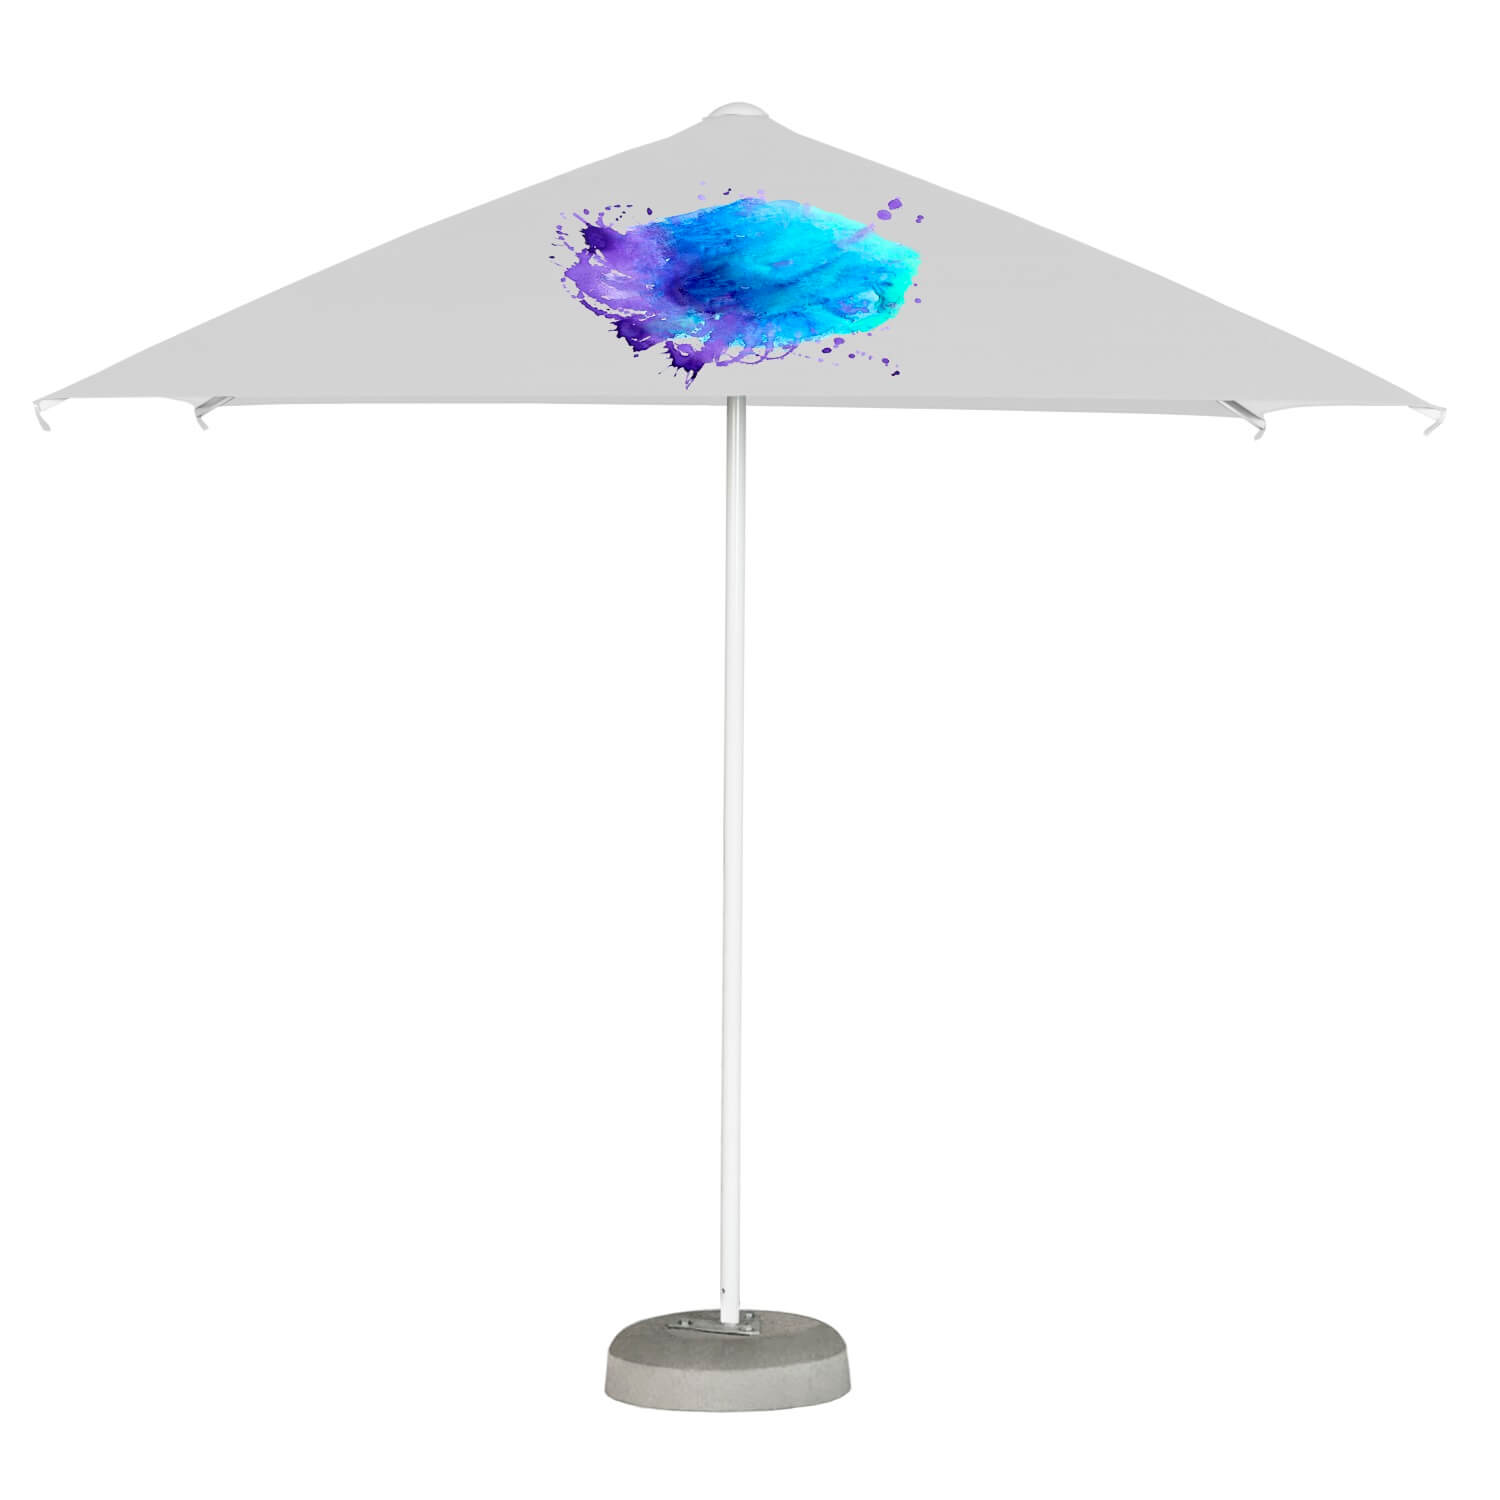 13. Easy Up Parasol Square 2,5 m